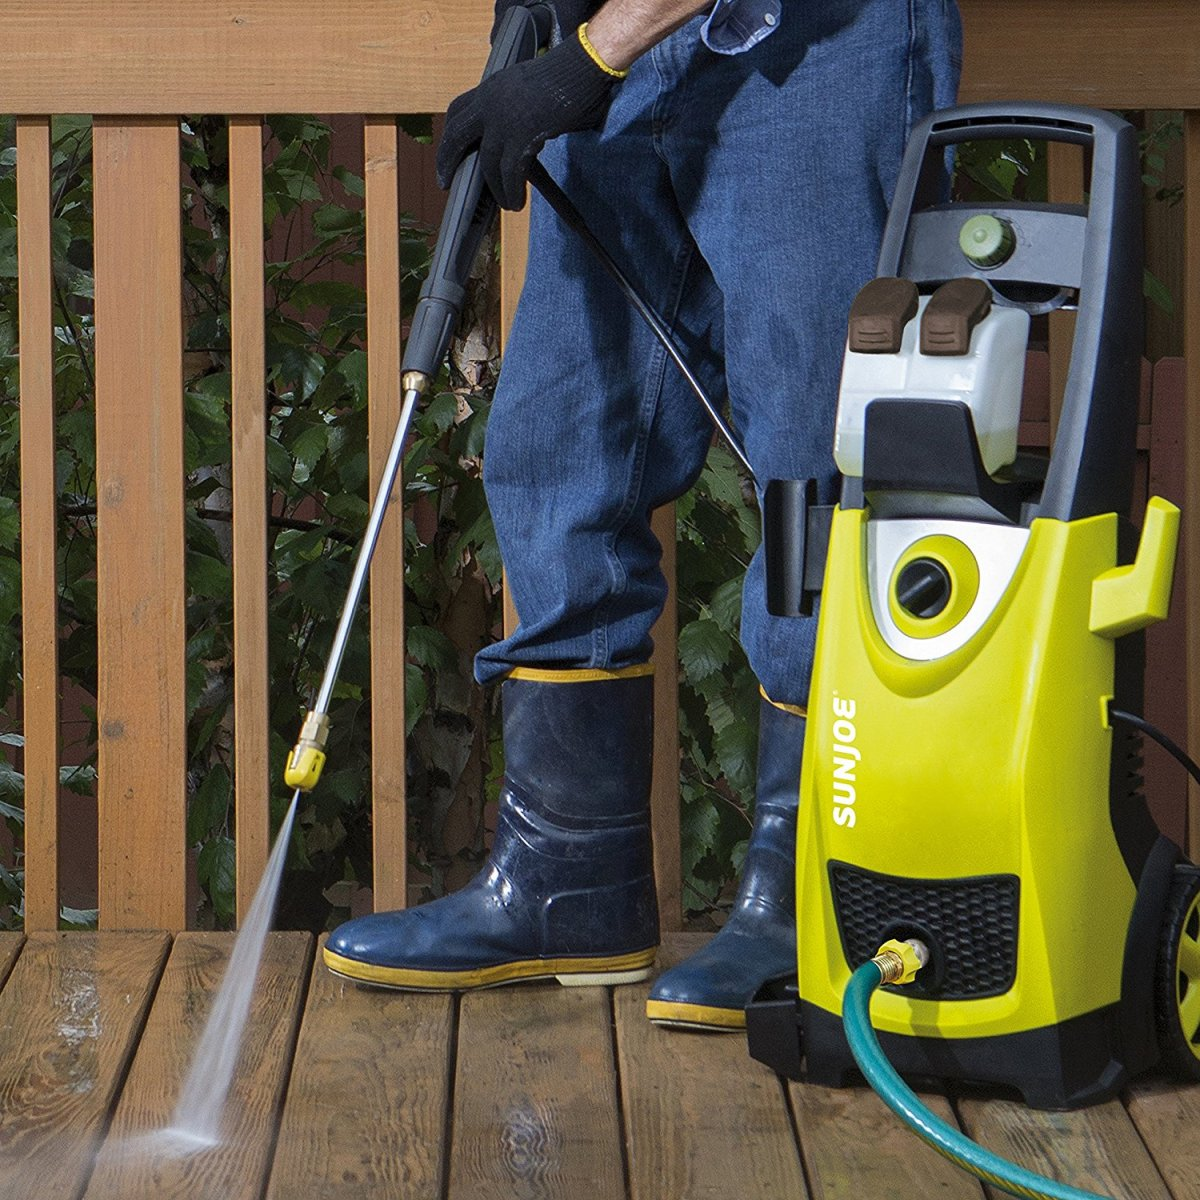 Sun Joe SPX3000 High Pressure Cleaner: Pros and Cons From an